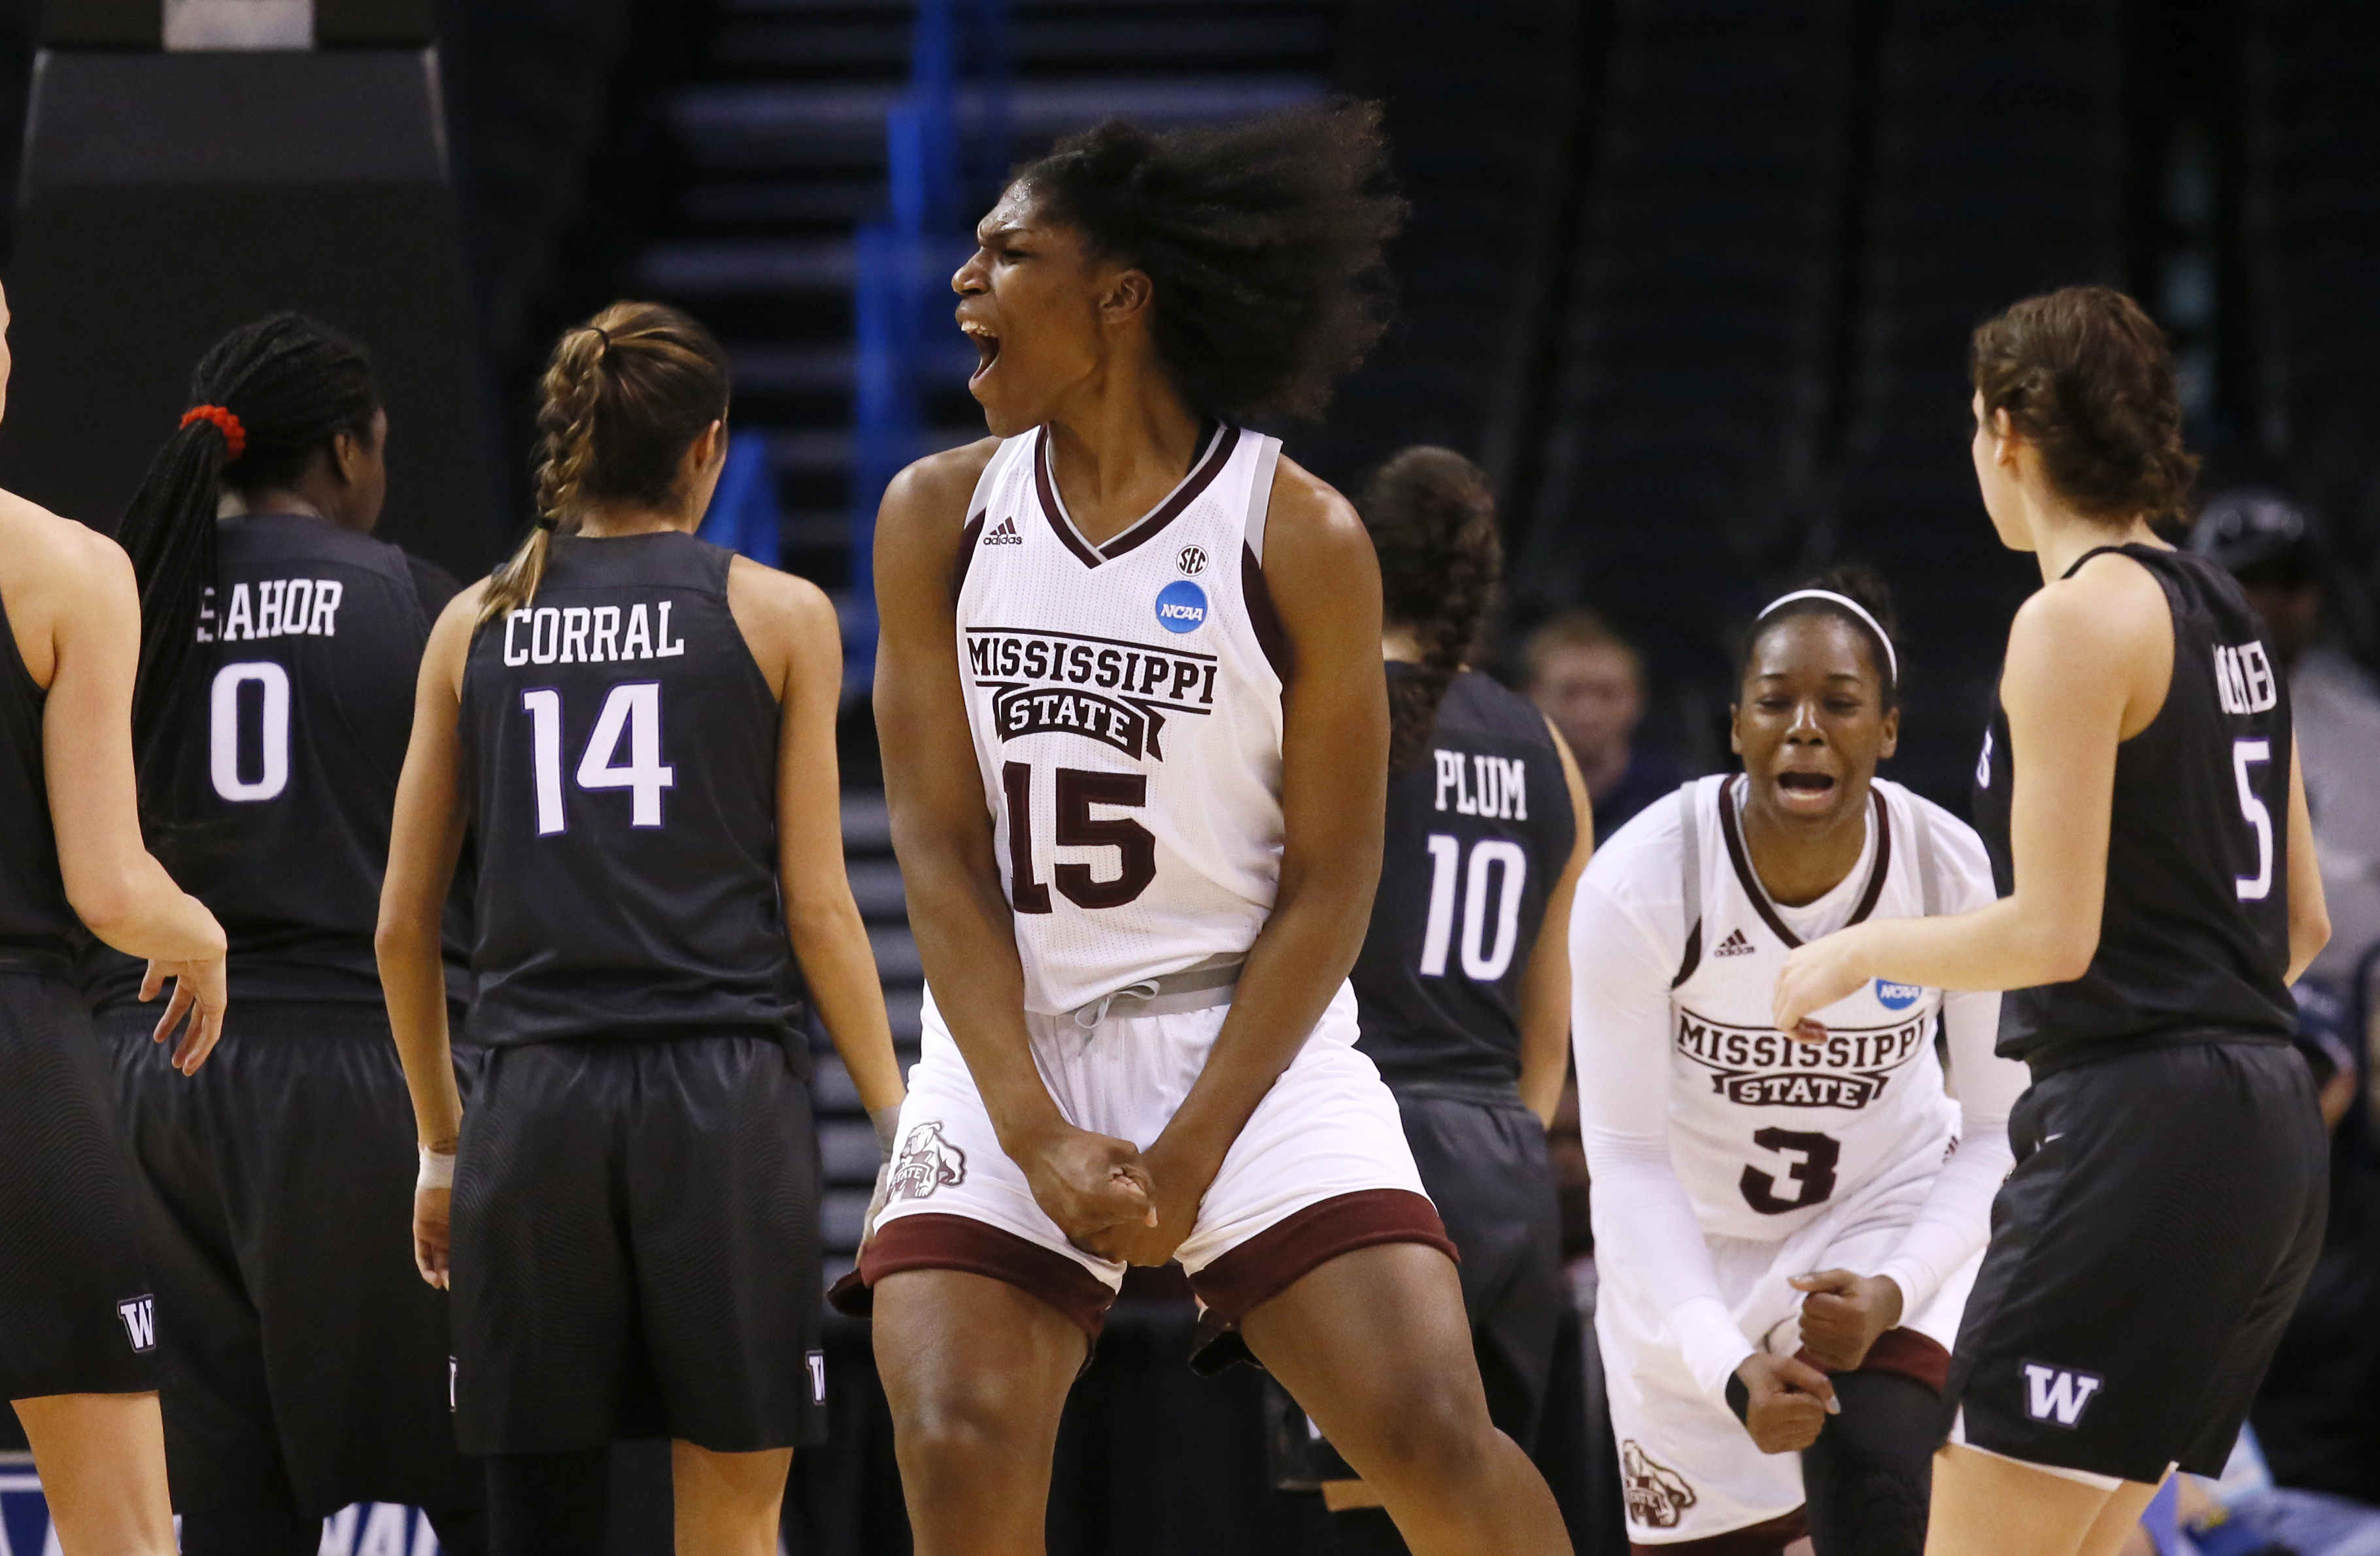 Mississippi State center Teaira McCowan (15) celebrates during the second half of a regional semifinal against Washington in the NCAA women's college basketball tournament, Friday, March 24, 2017, in Oklahoma City. (AP Photo/Sue Ogrocki)